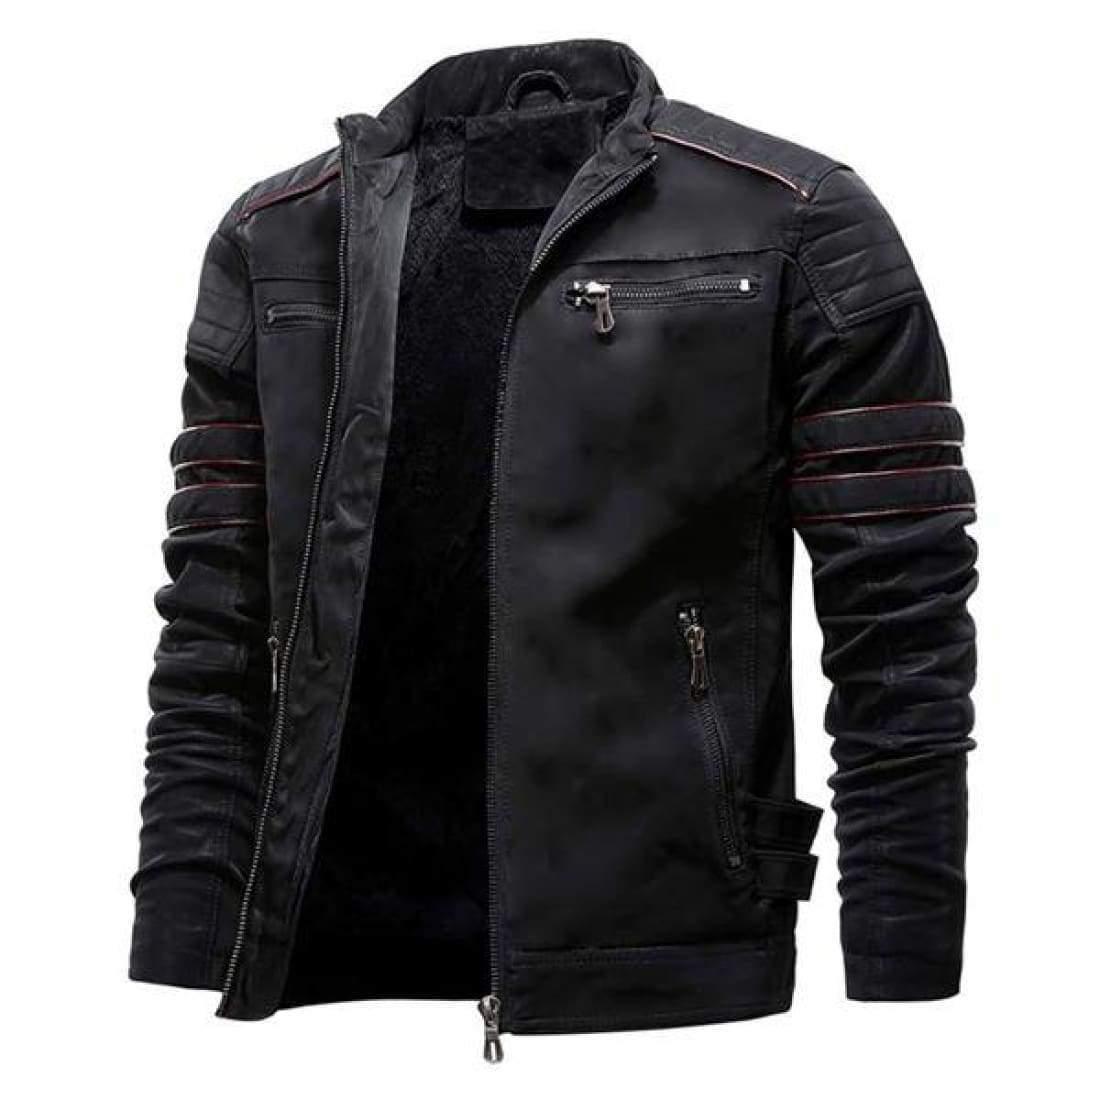 Drifter leather jacket - Black / S